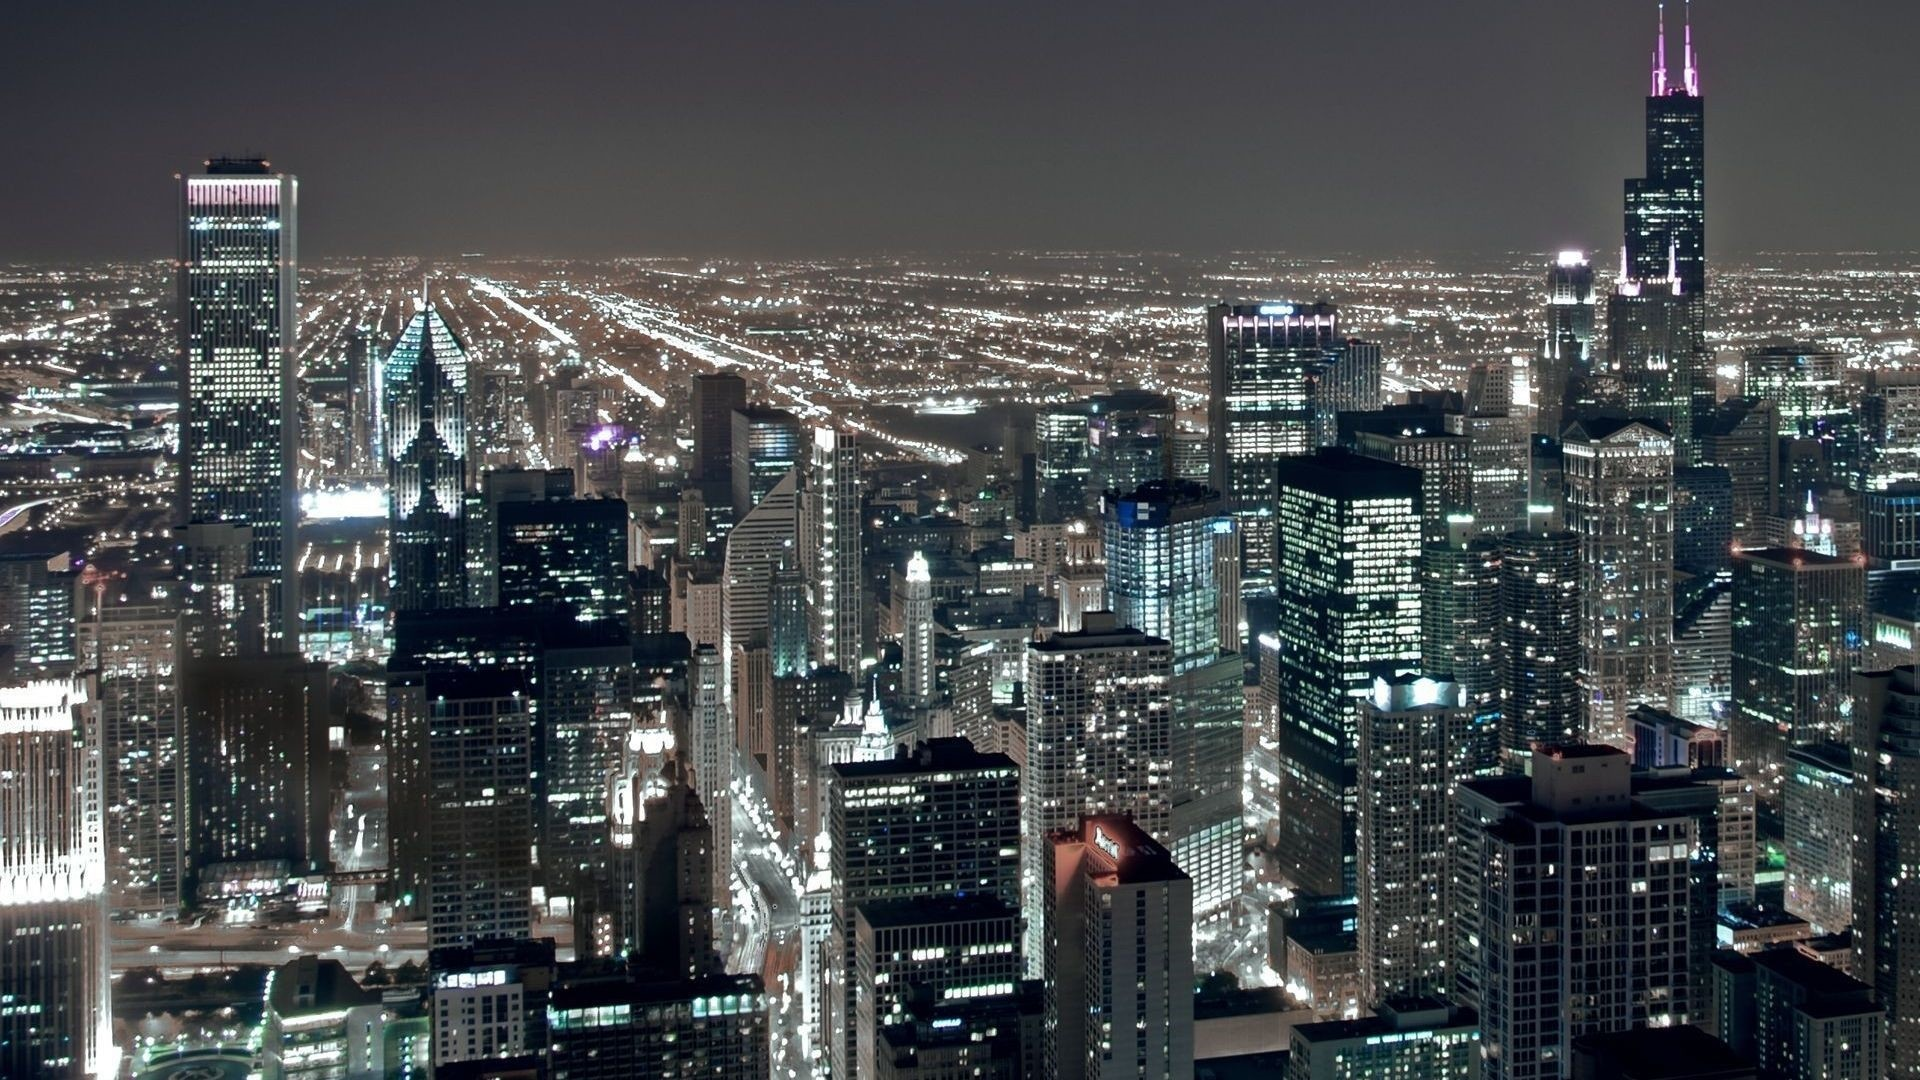 Chicago At Night Wallpaper: Chicago Skyline Wallpaper 1920x1080 (74+ Images